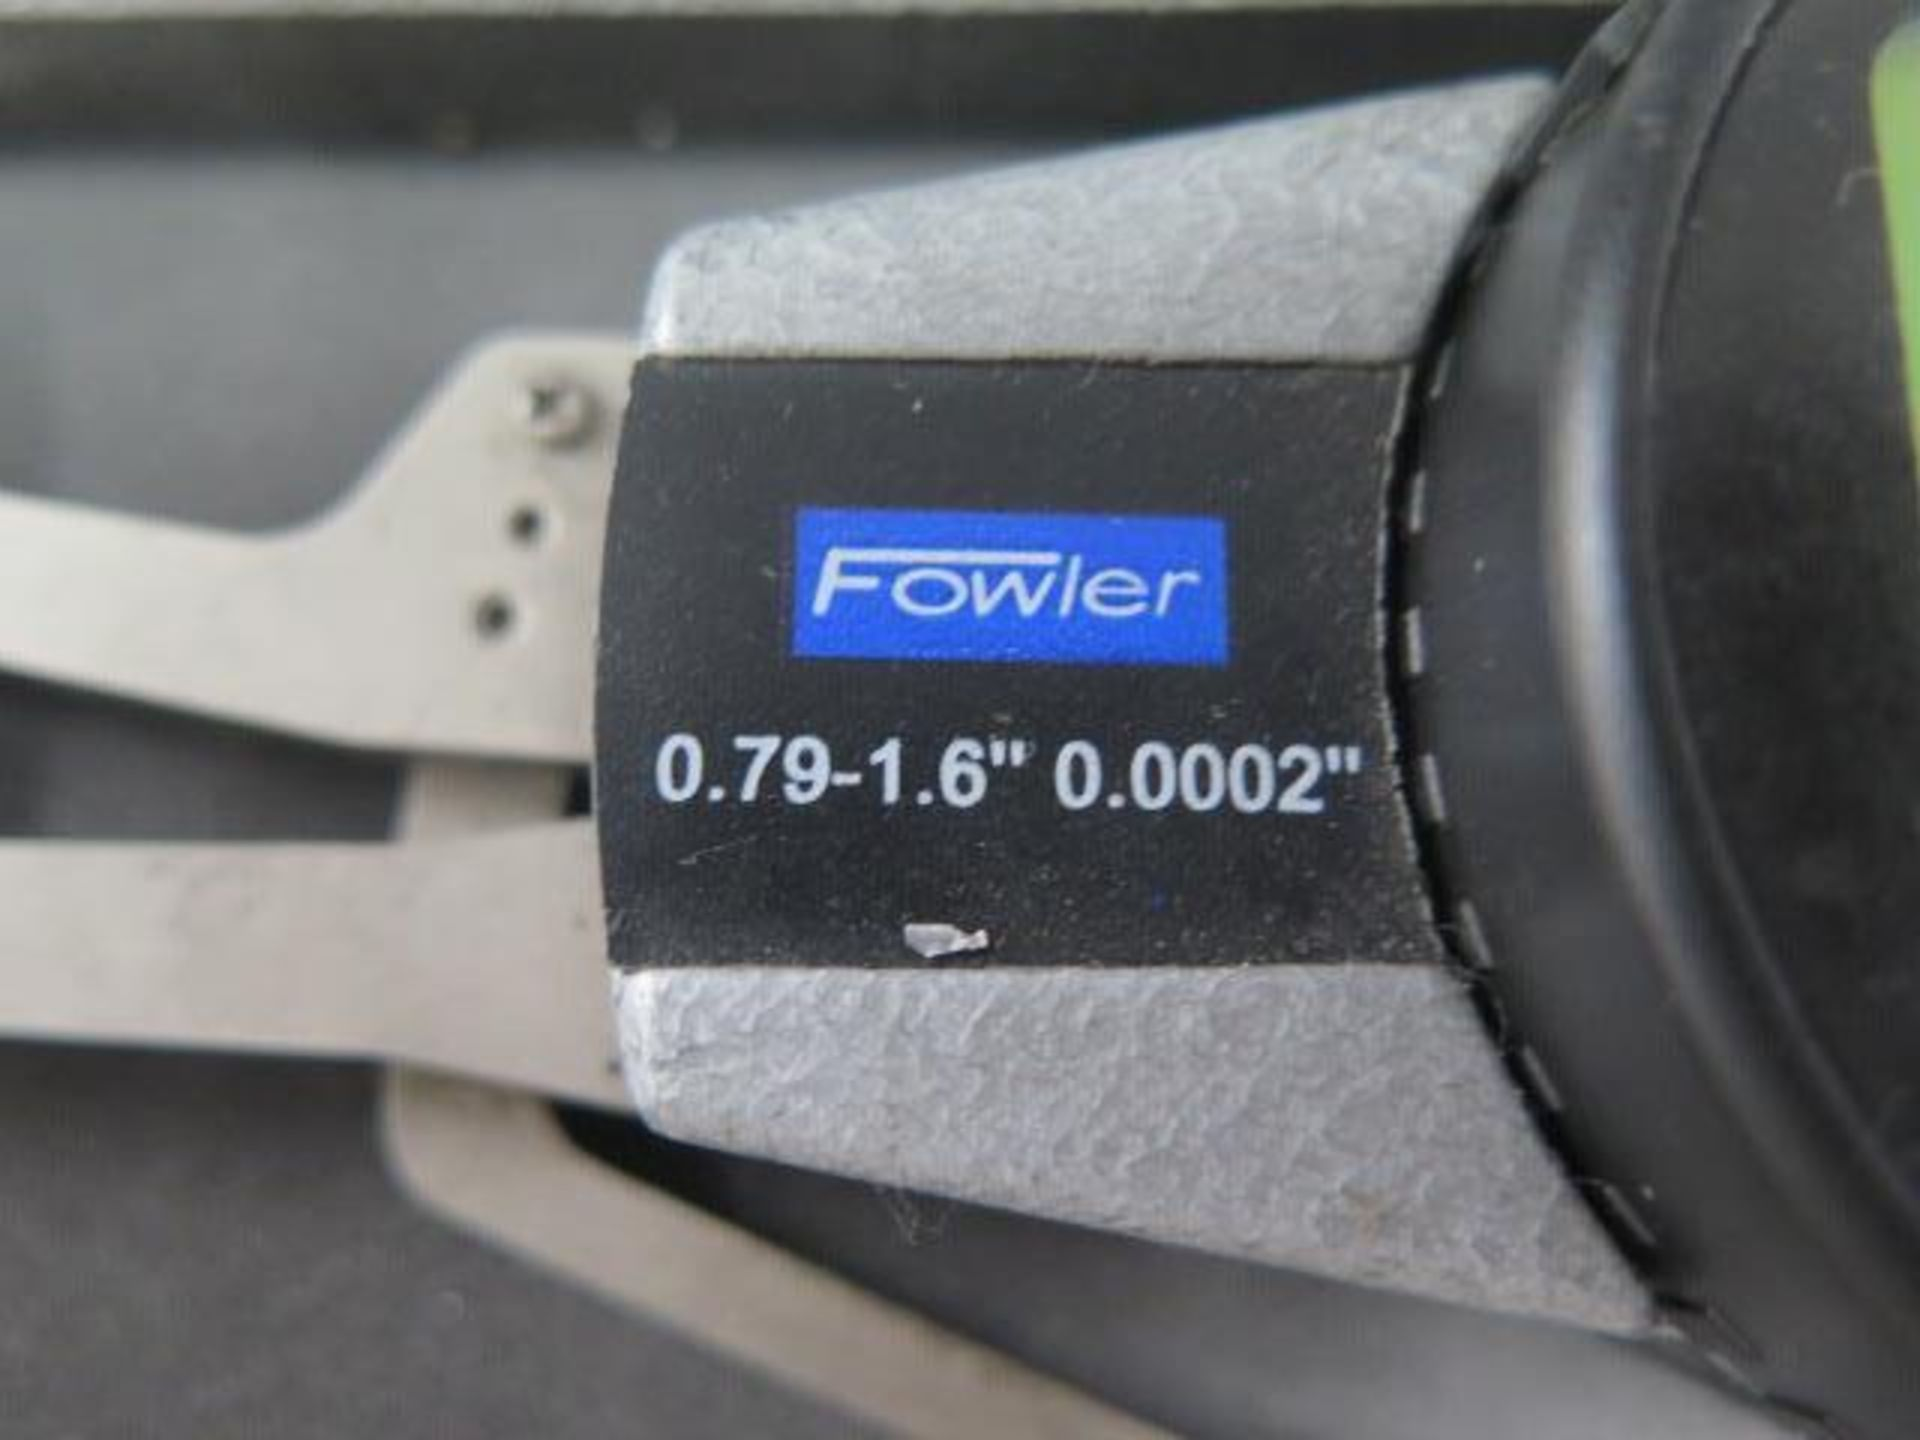 """Fowler .79""""-1.6"""" Digital Caliper Gage (SOLD AS-IS - NO WARRANTY) - Image 4 of 4"""